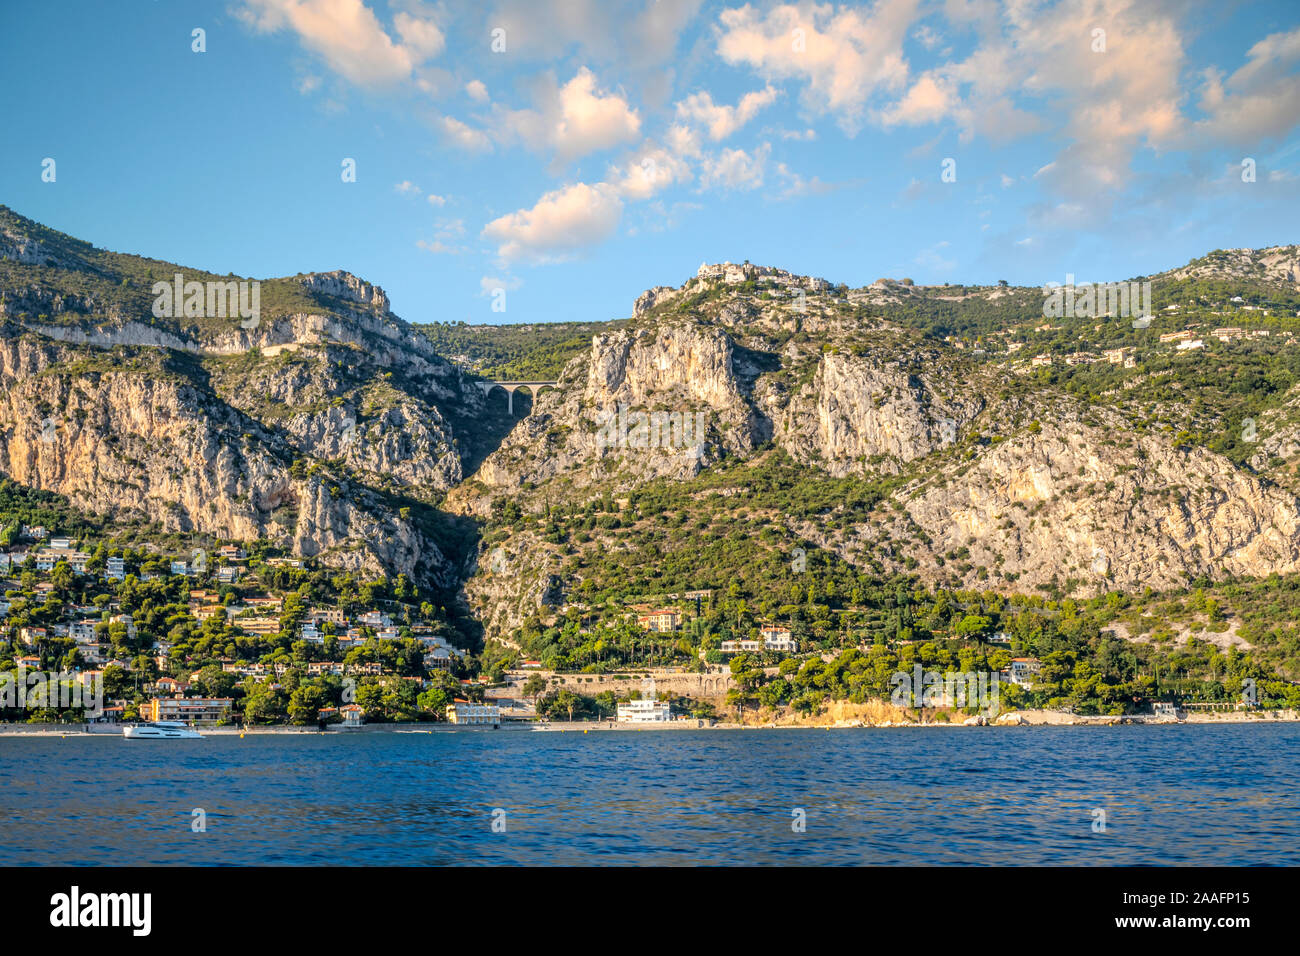 View from a boat at sea of the medieval hilltop village of Eze on the French Riviera in the South of France. Stock Photo